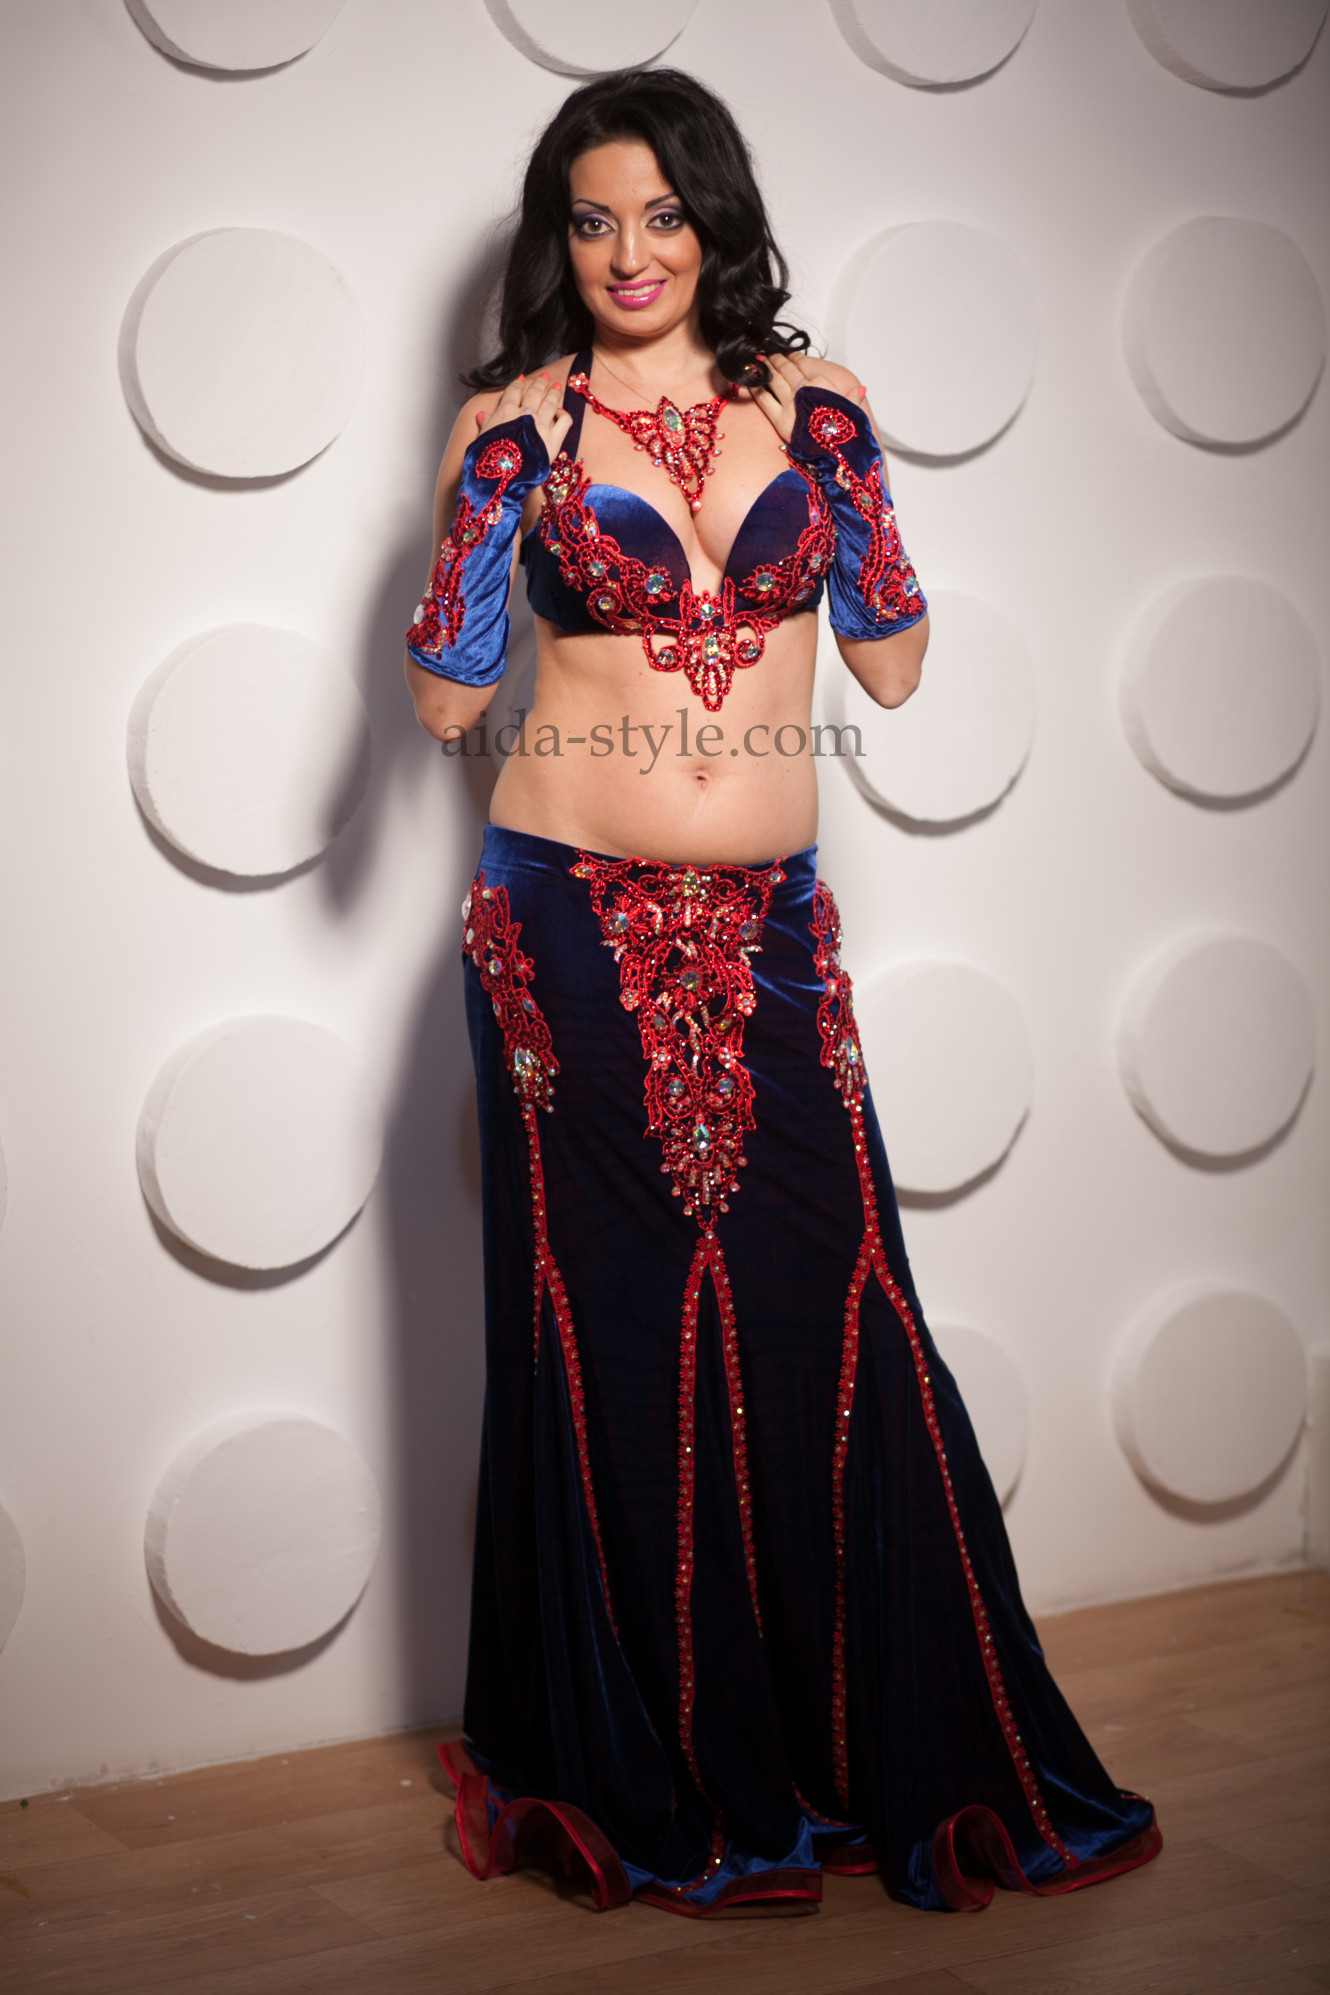 Professional belly dance costume in dark blue color with bordo flowers as an application